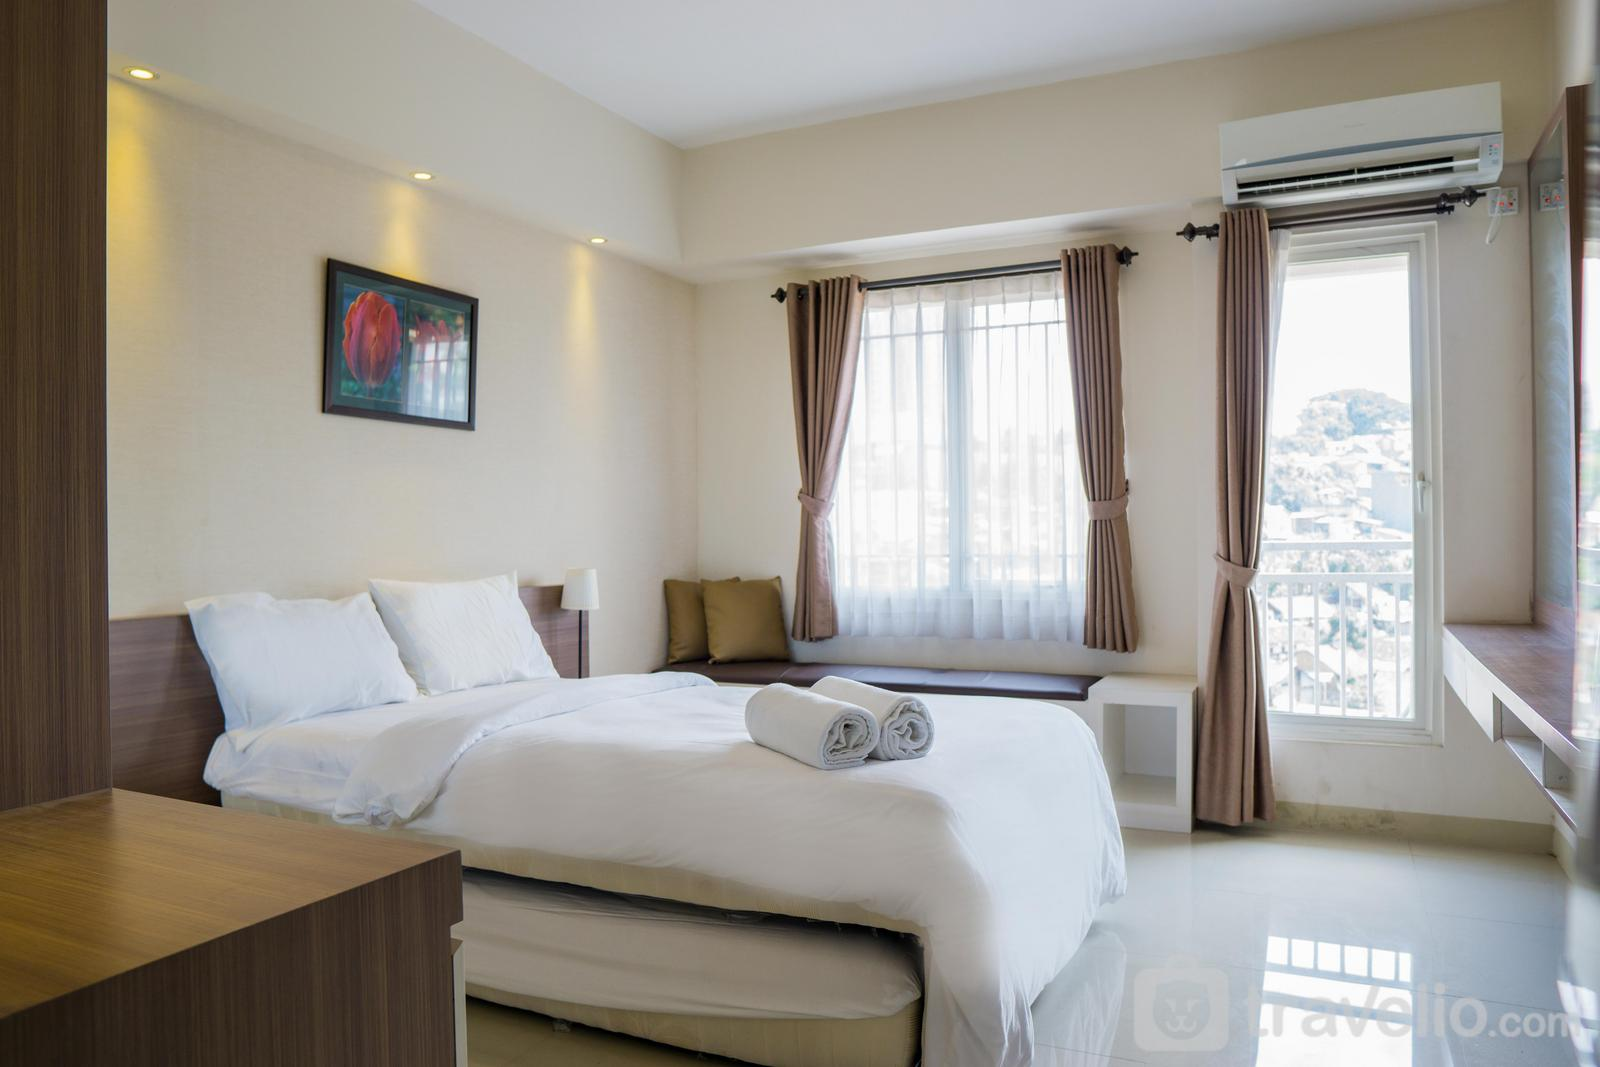 Galeri Ciumbuleuit 2 Apartment - Exquisite Studio Apartment at Galeri Ciumbuleuit 2 By Travelio